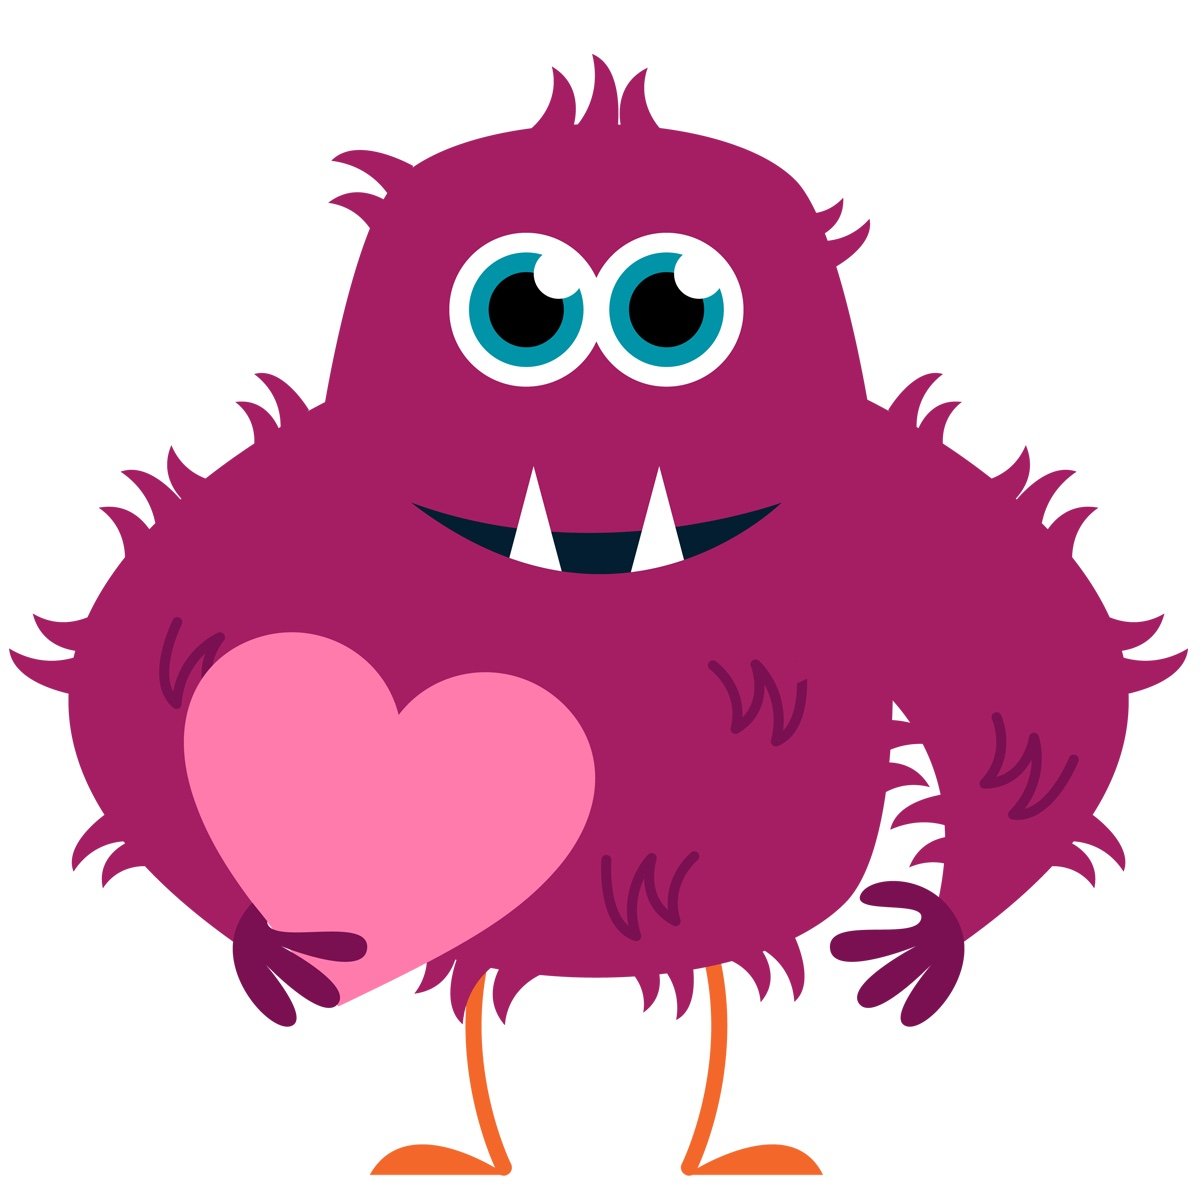 happy-monster-clipart-Meagan_11113ValentineCLIPART_6